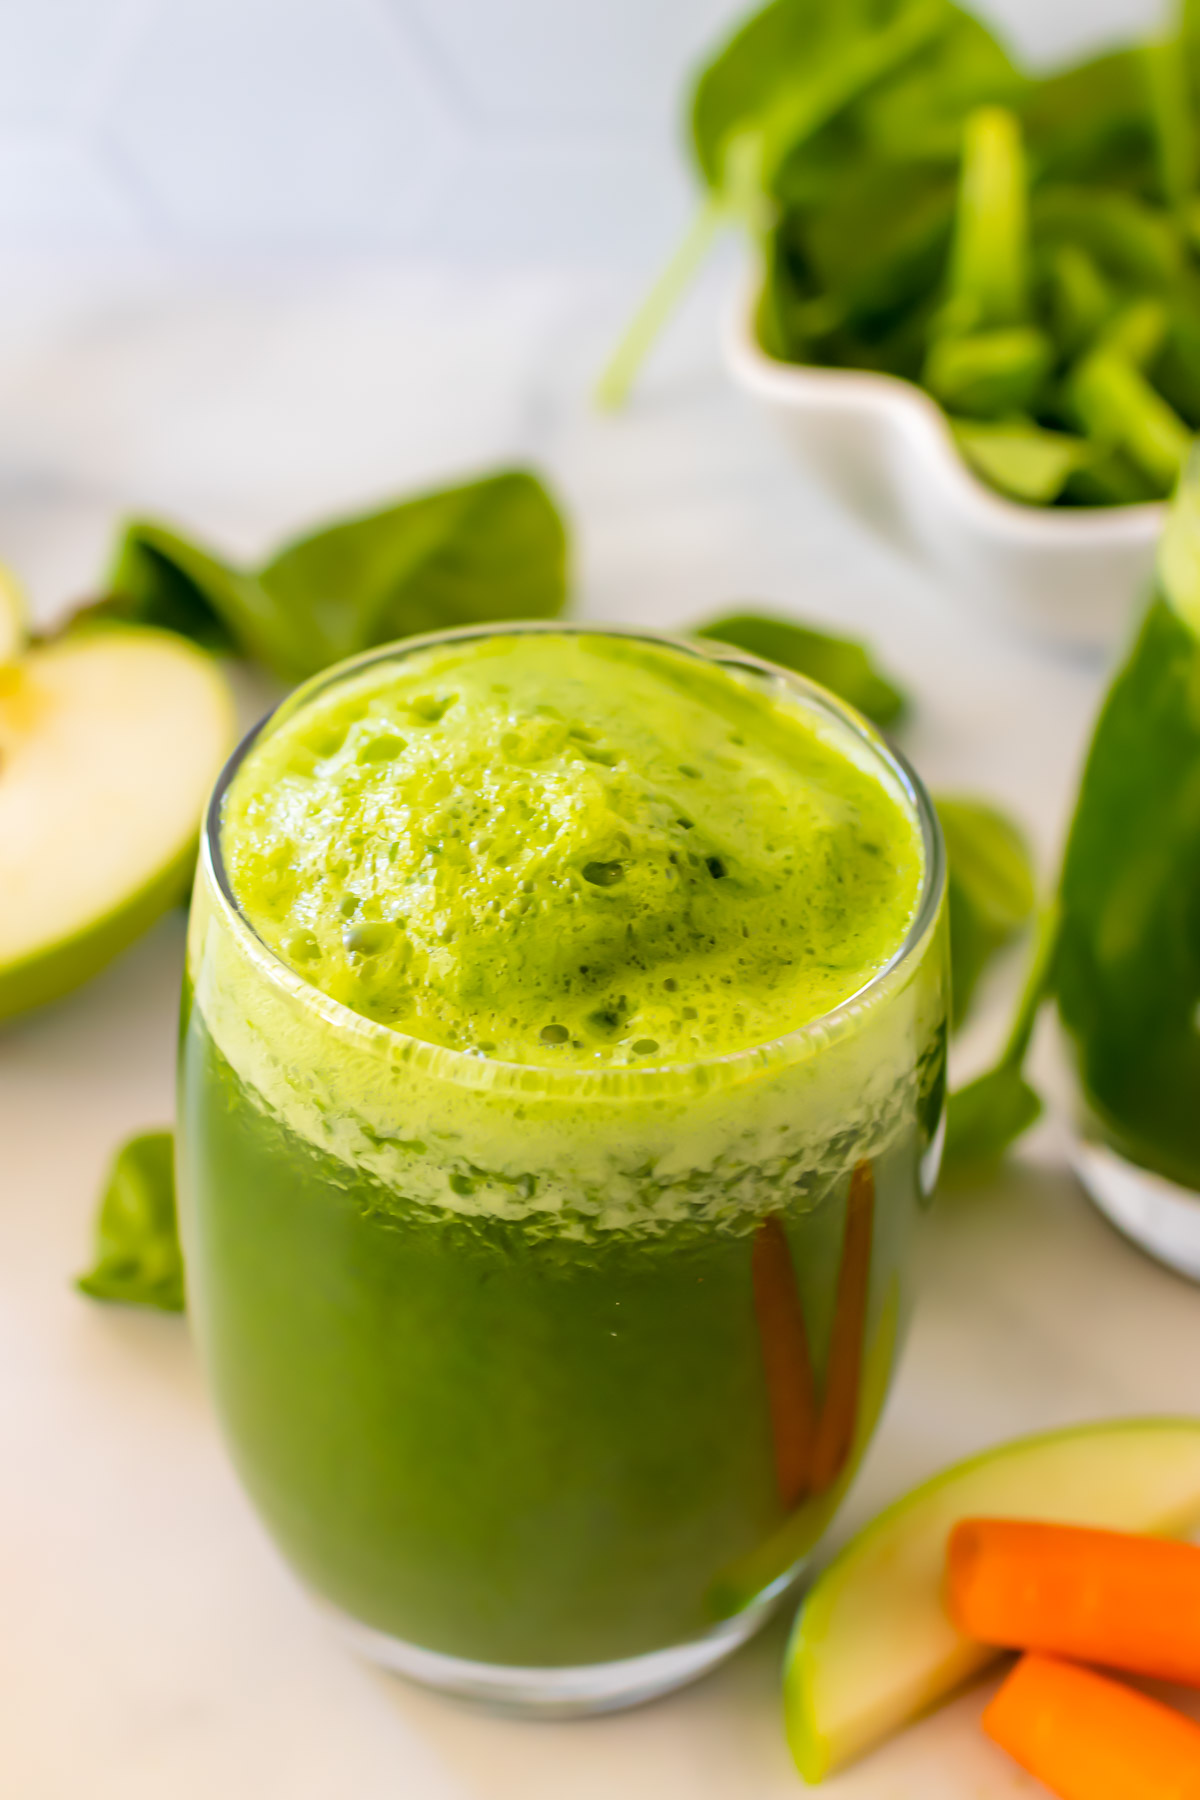 A glass of green juice.